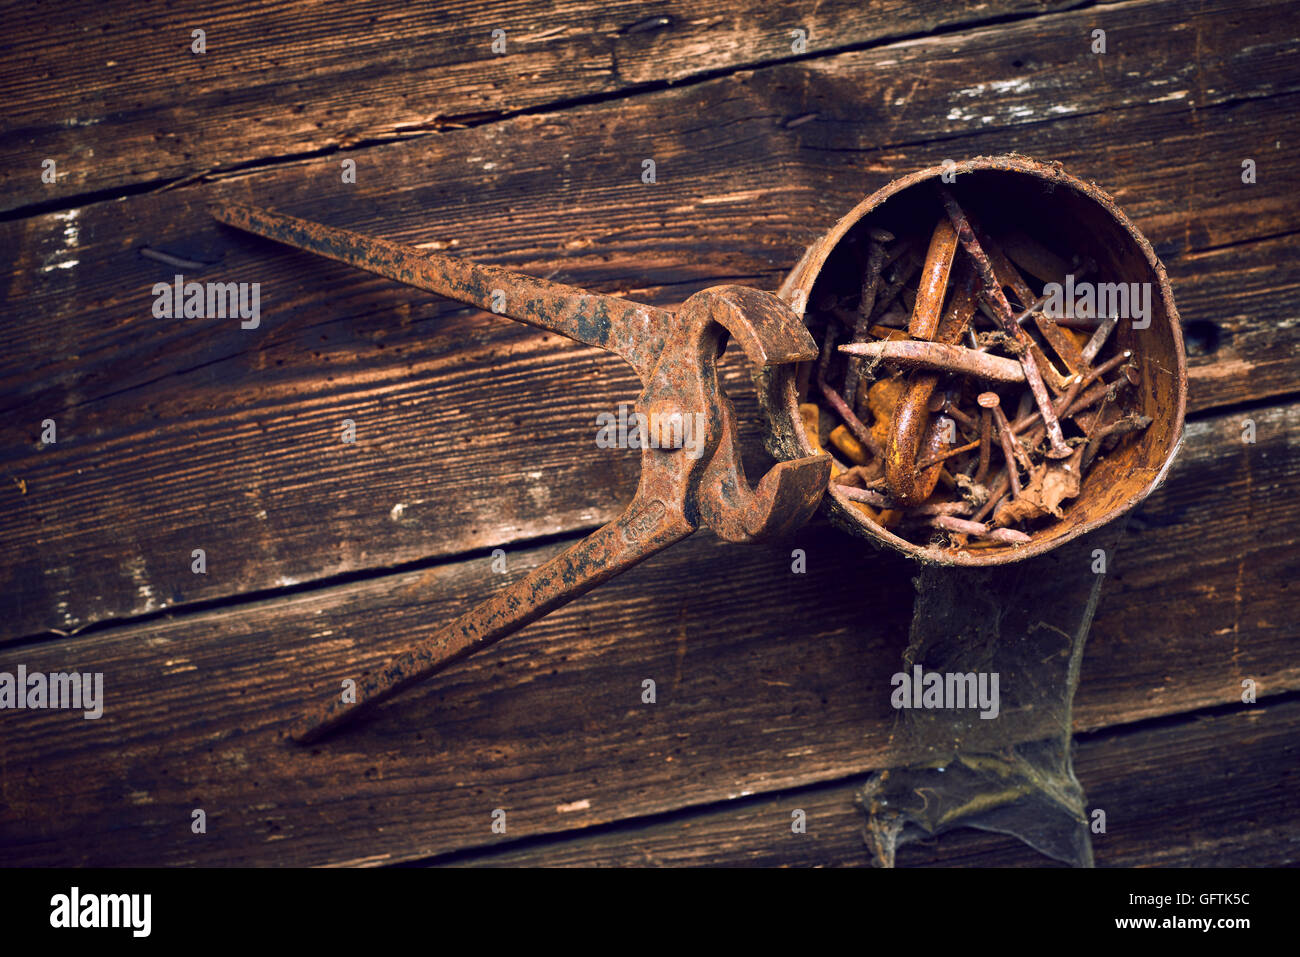 old rusty pinchers with can of nails on wooden boards background - Stock Image